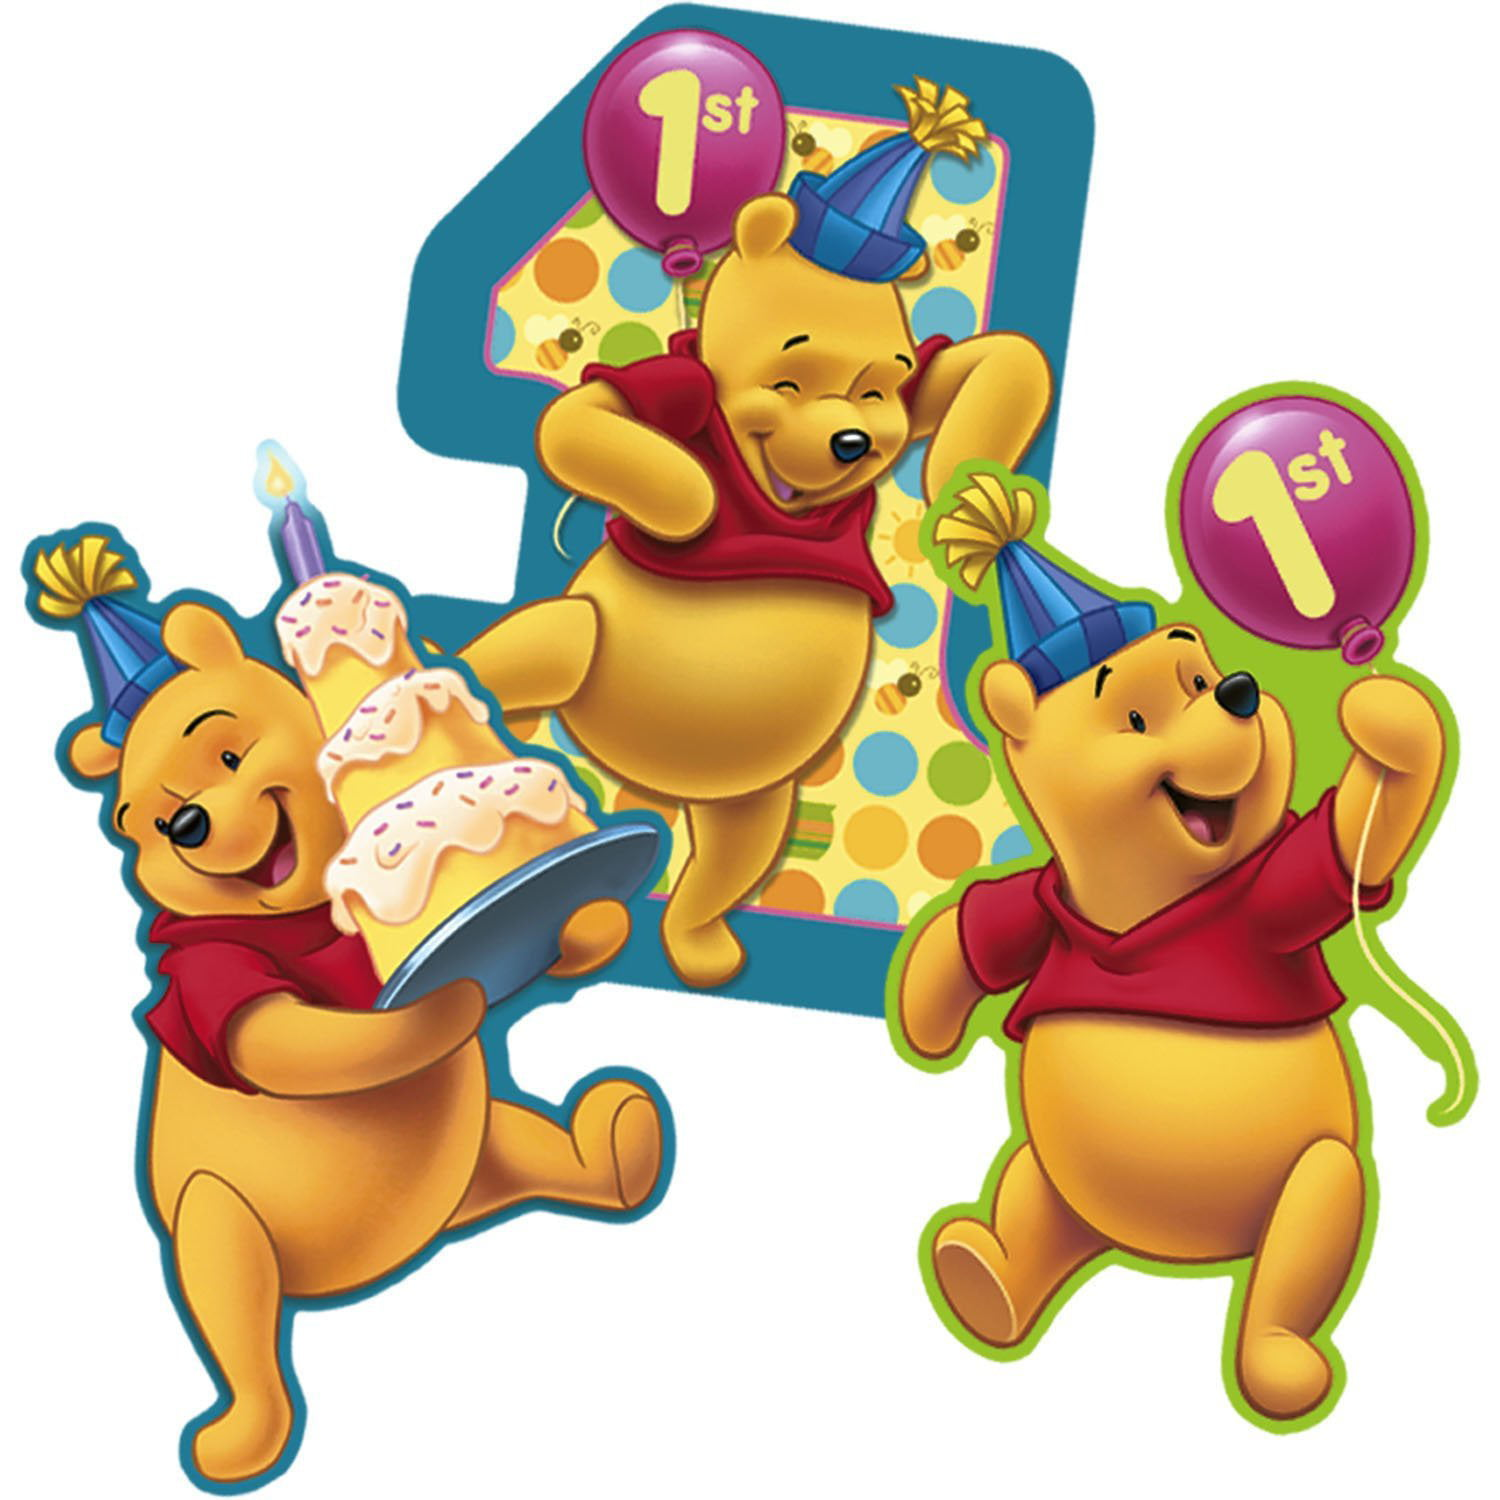 Winnie the Pooh 1st Birthday Wall Decorations 3ct Walmart